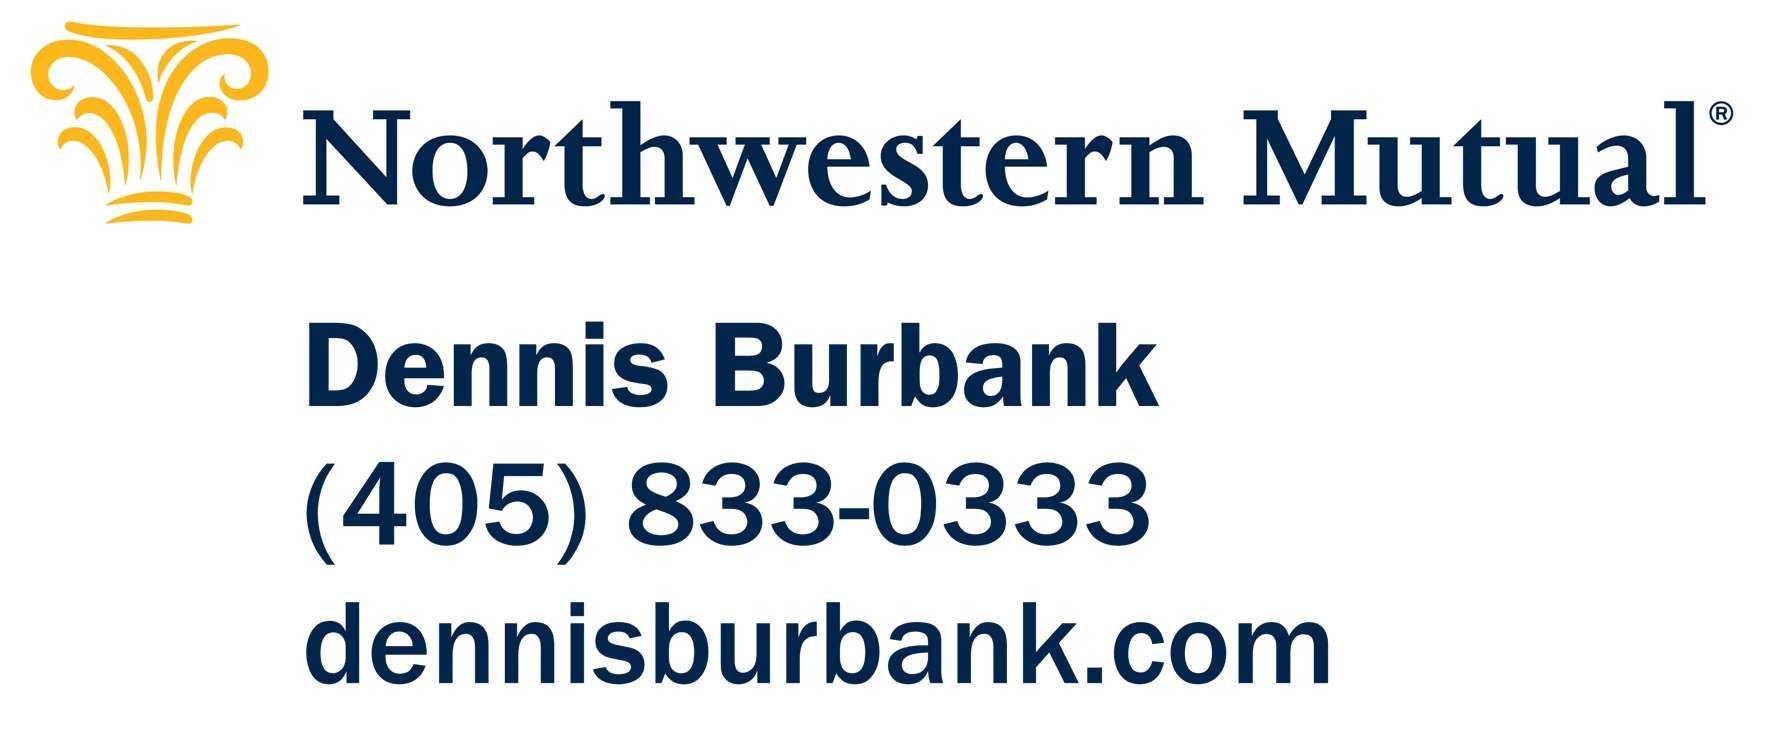 Northwestern Mutual - Burbank